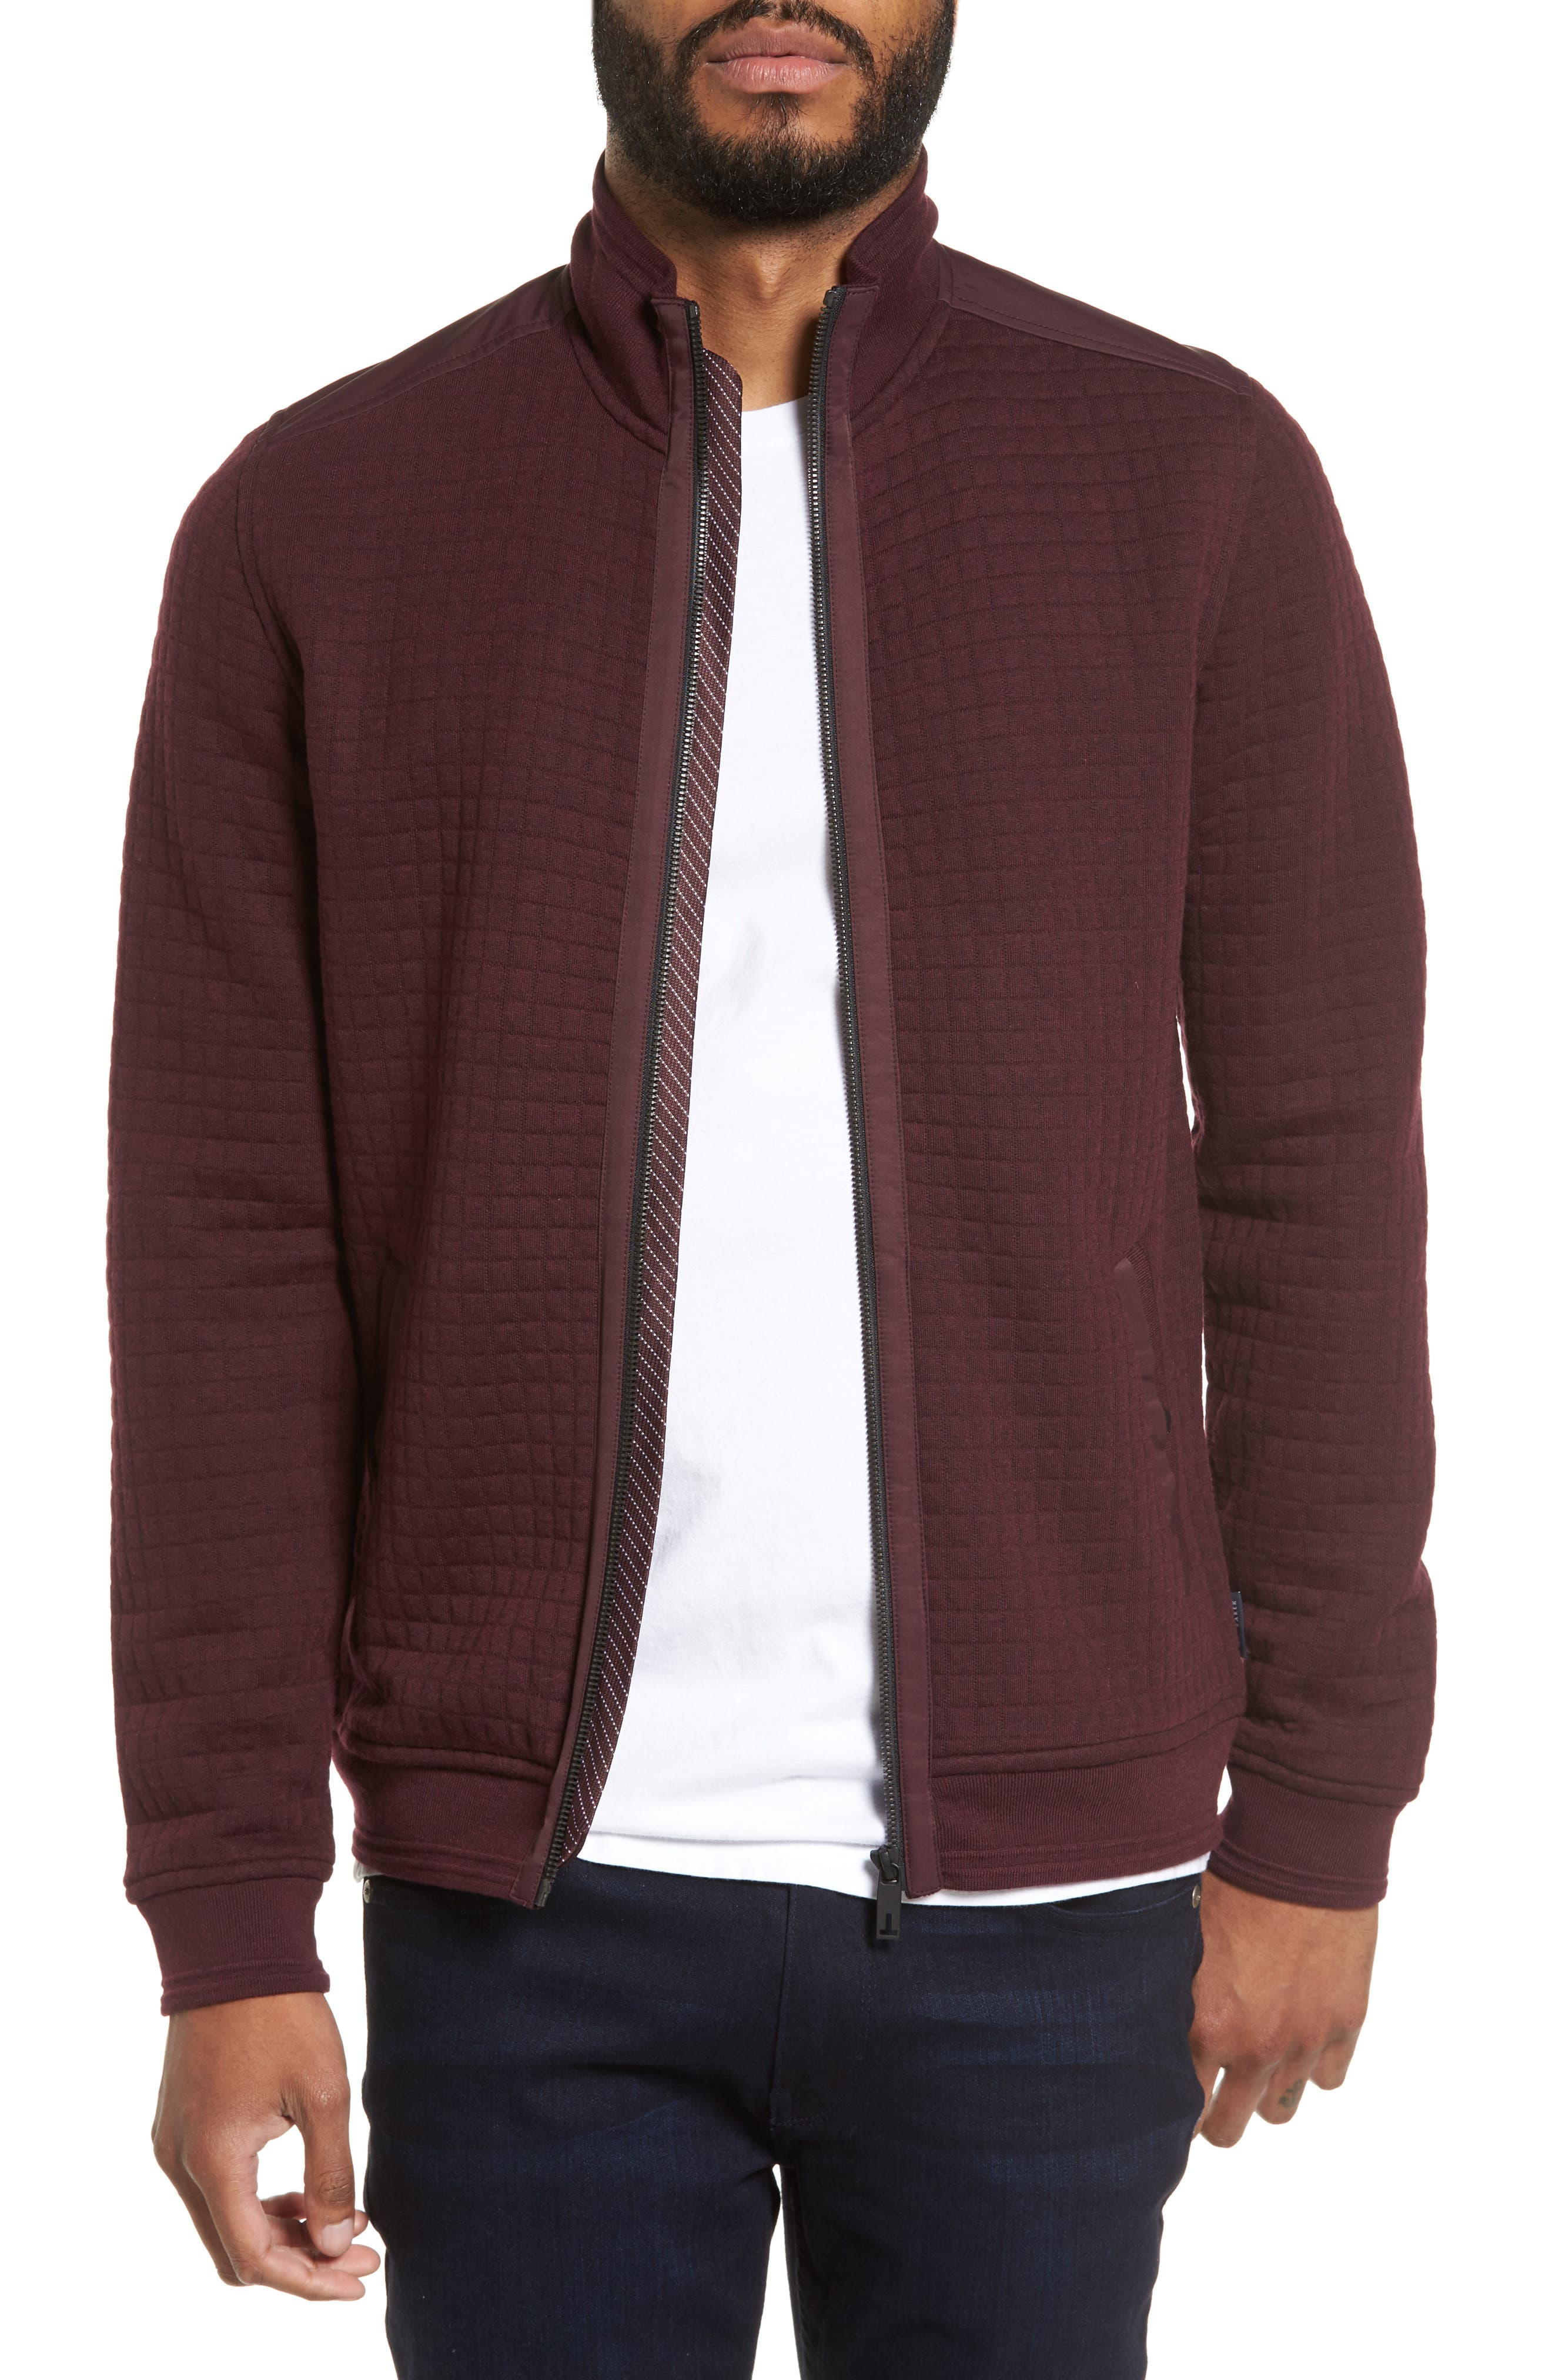 Ken Quilted Bomber Jacket,                             Main thumbnail 1, color,                             Dark Red